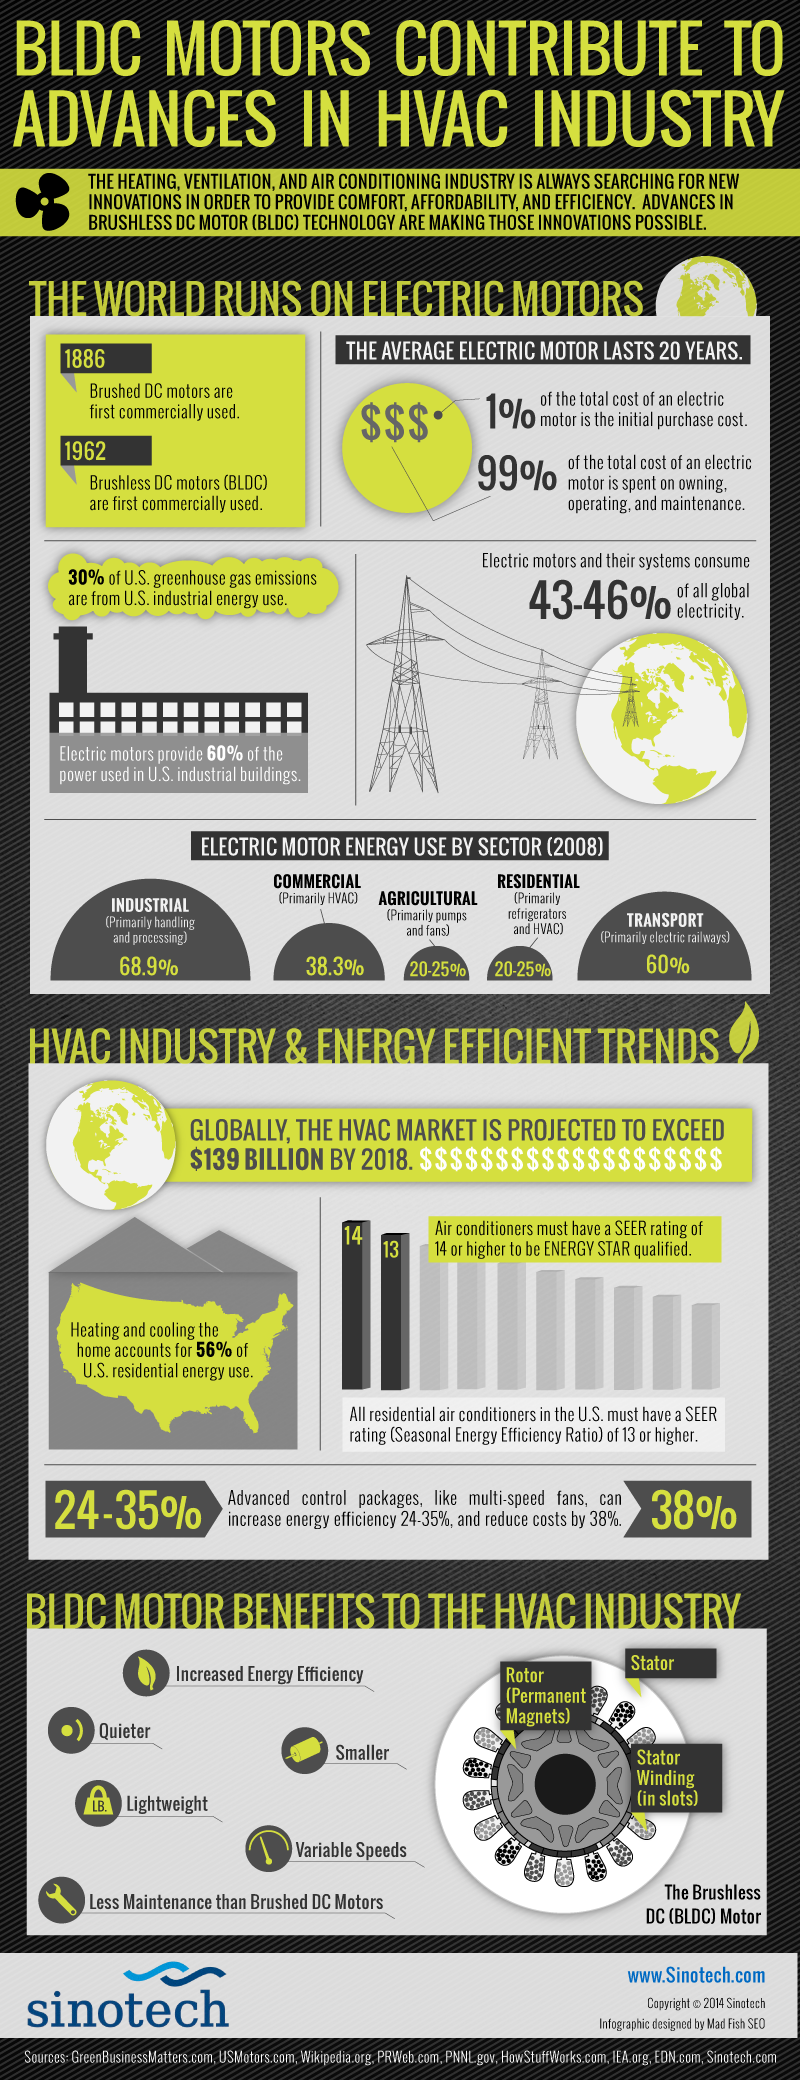 BLDC Motors Contribute to Advances in HVAC Industry